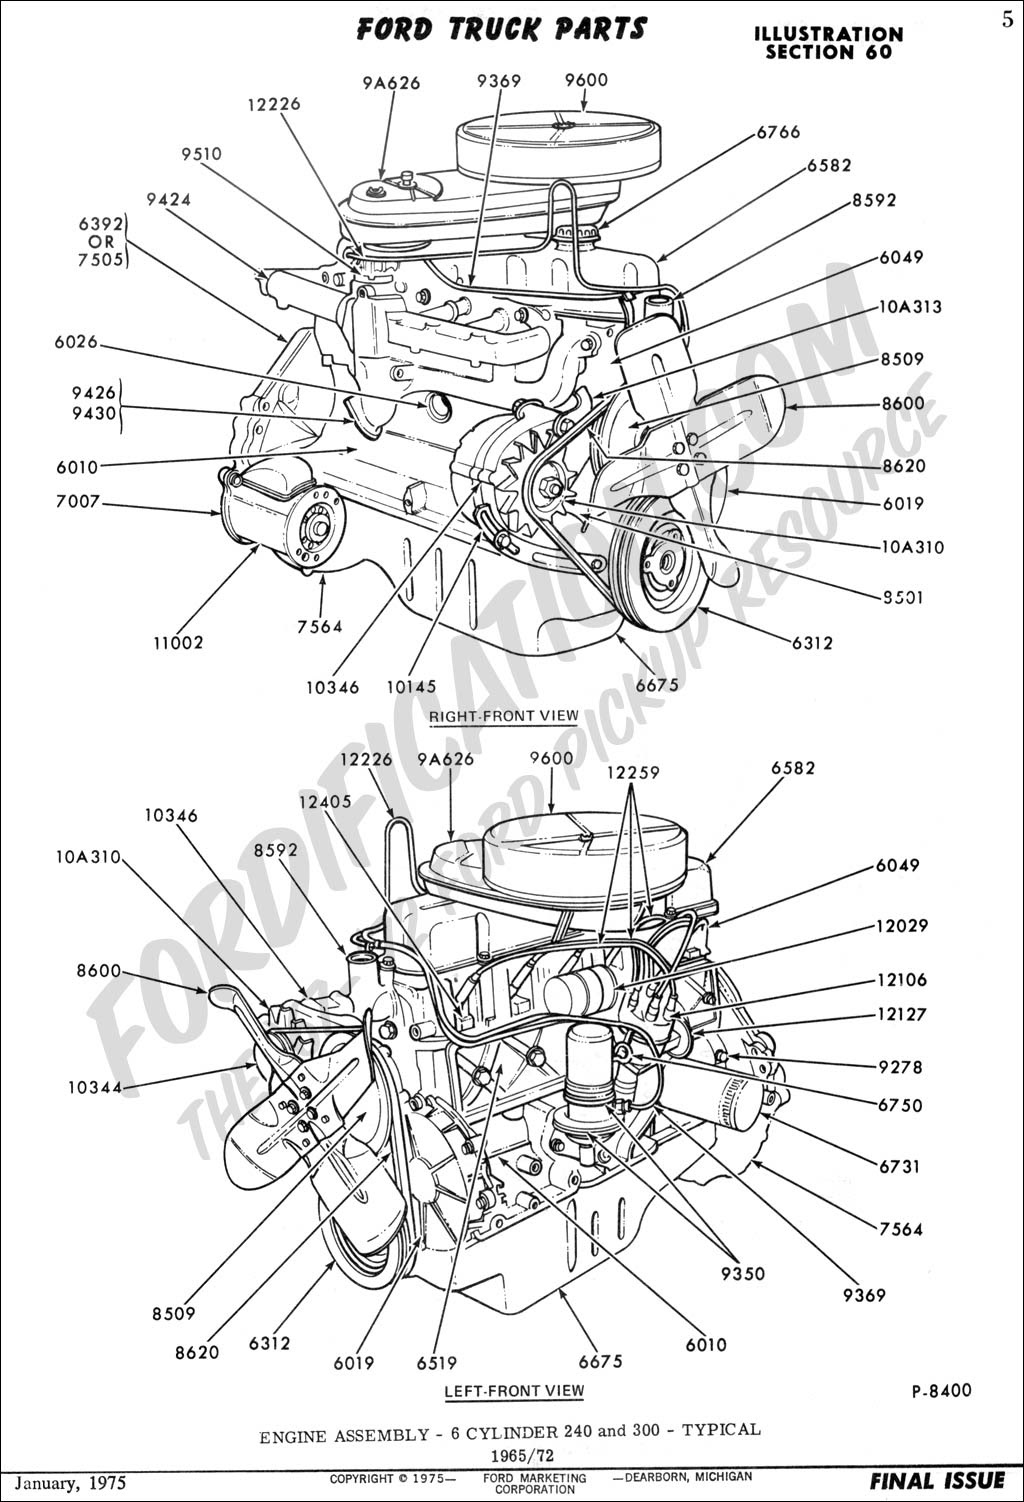 1969 Ford 302 Engine Diagram Wiring Diagram Octavia A Octavia A Musikami It